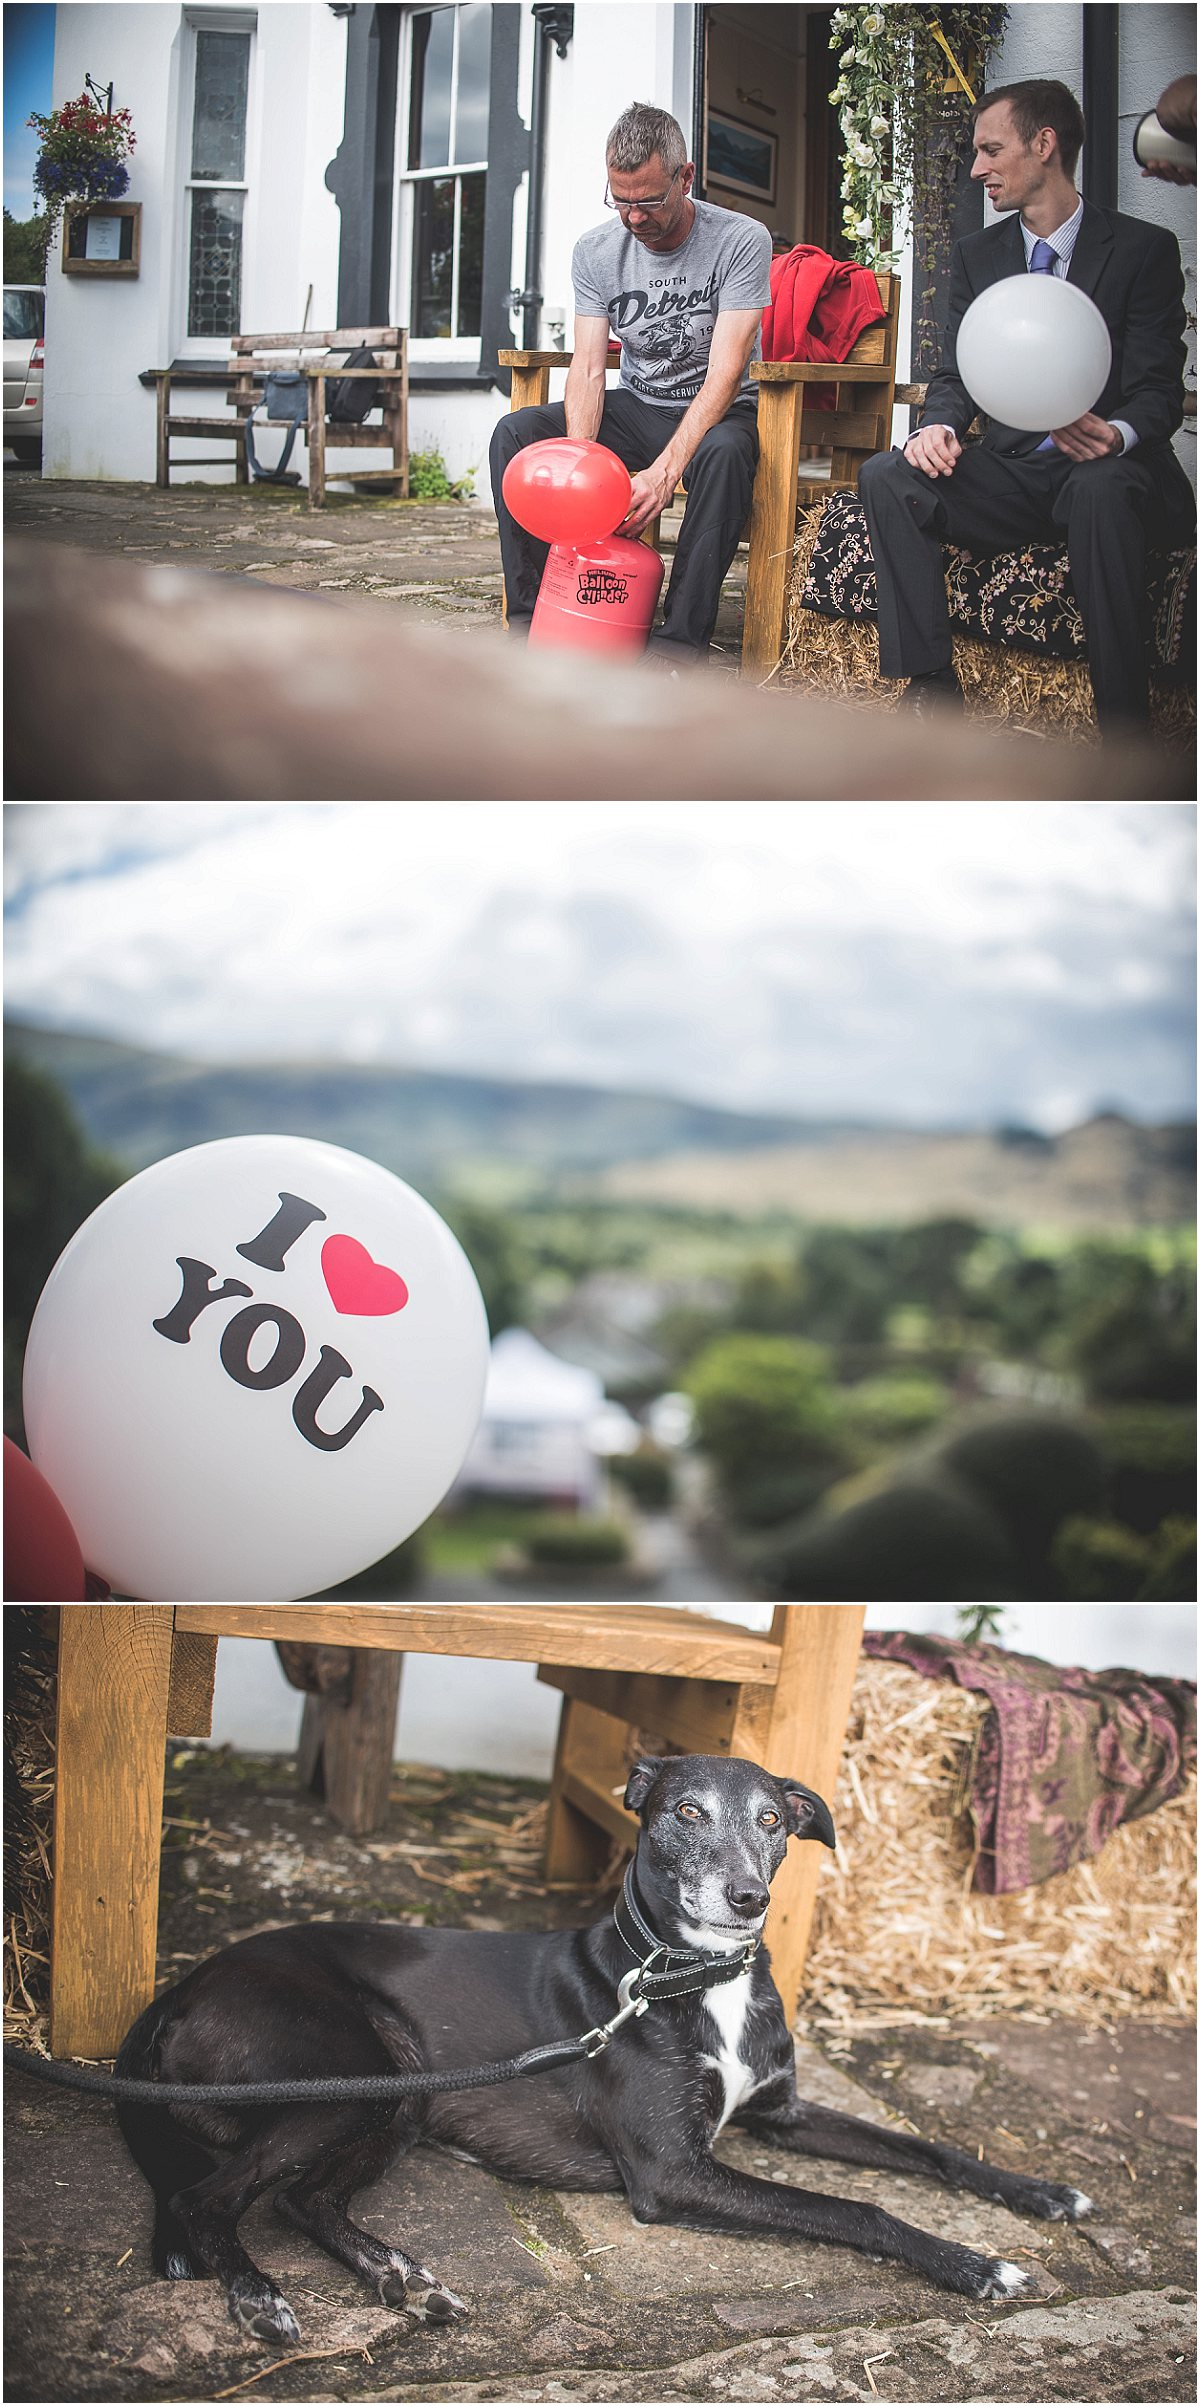 Low Wood Hall Hotel, Wast Water Wedding Photography